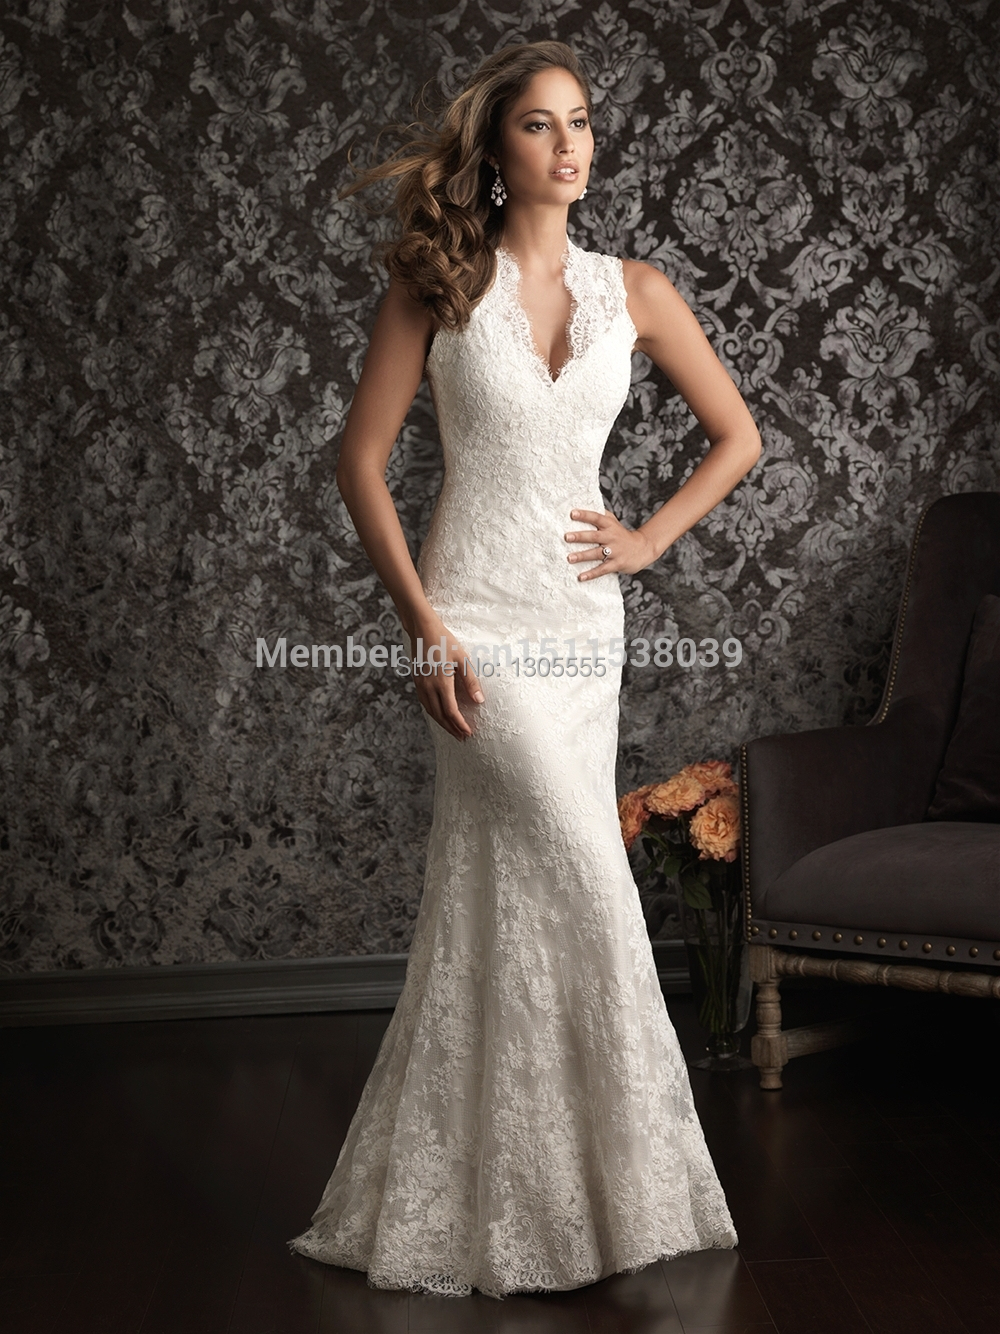 Custom made 2014 sexy lace mermaid wedding dresses deep v for A big wedding dress